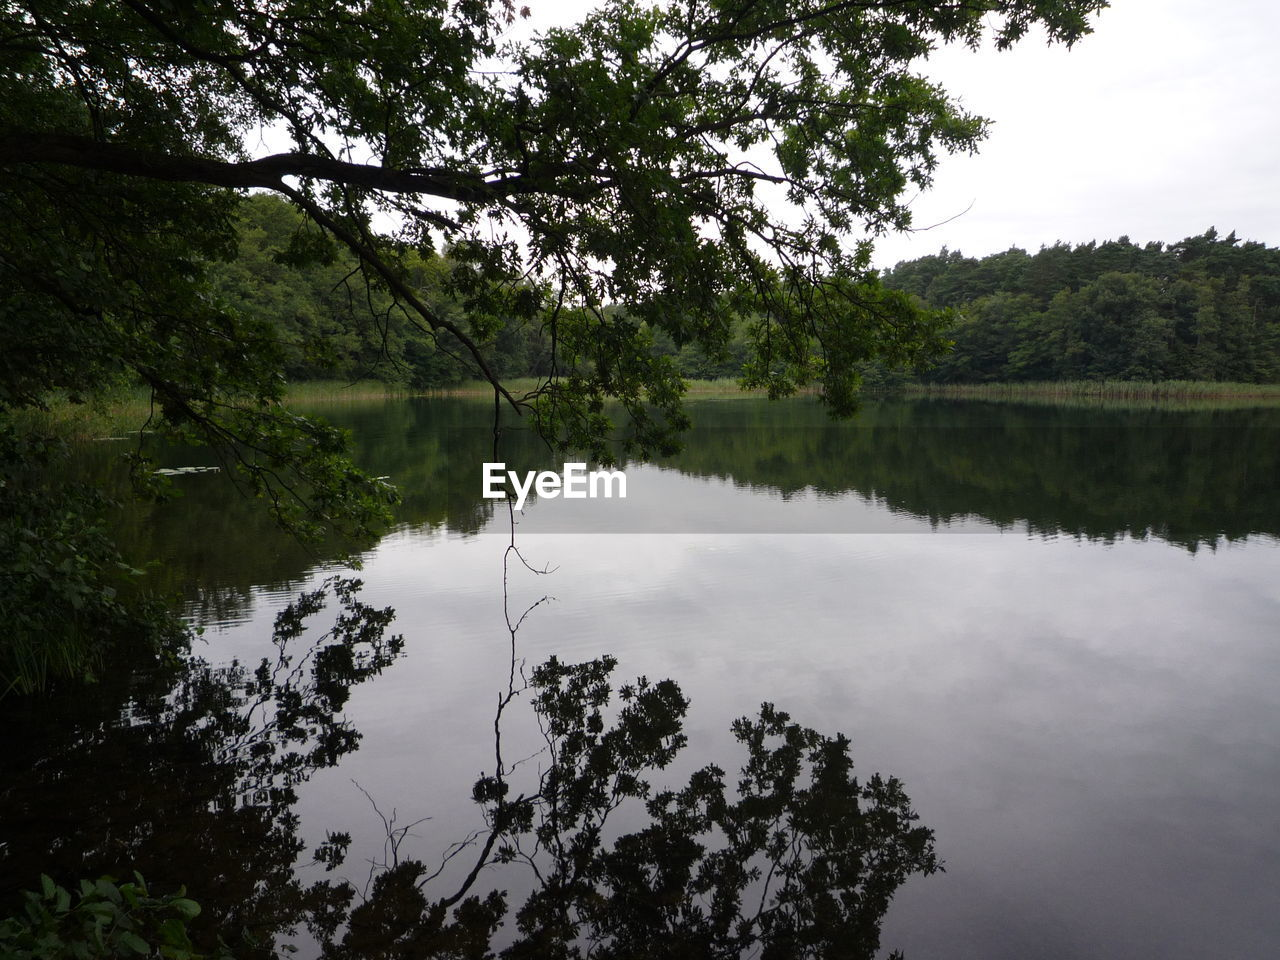 tree, reflection, water, lake, nature, tranquility, beauty in nature, tranquil scene, growth, outdoors, scenics, no people, forest, day, sky